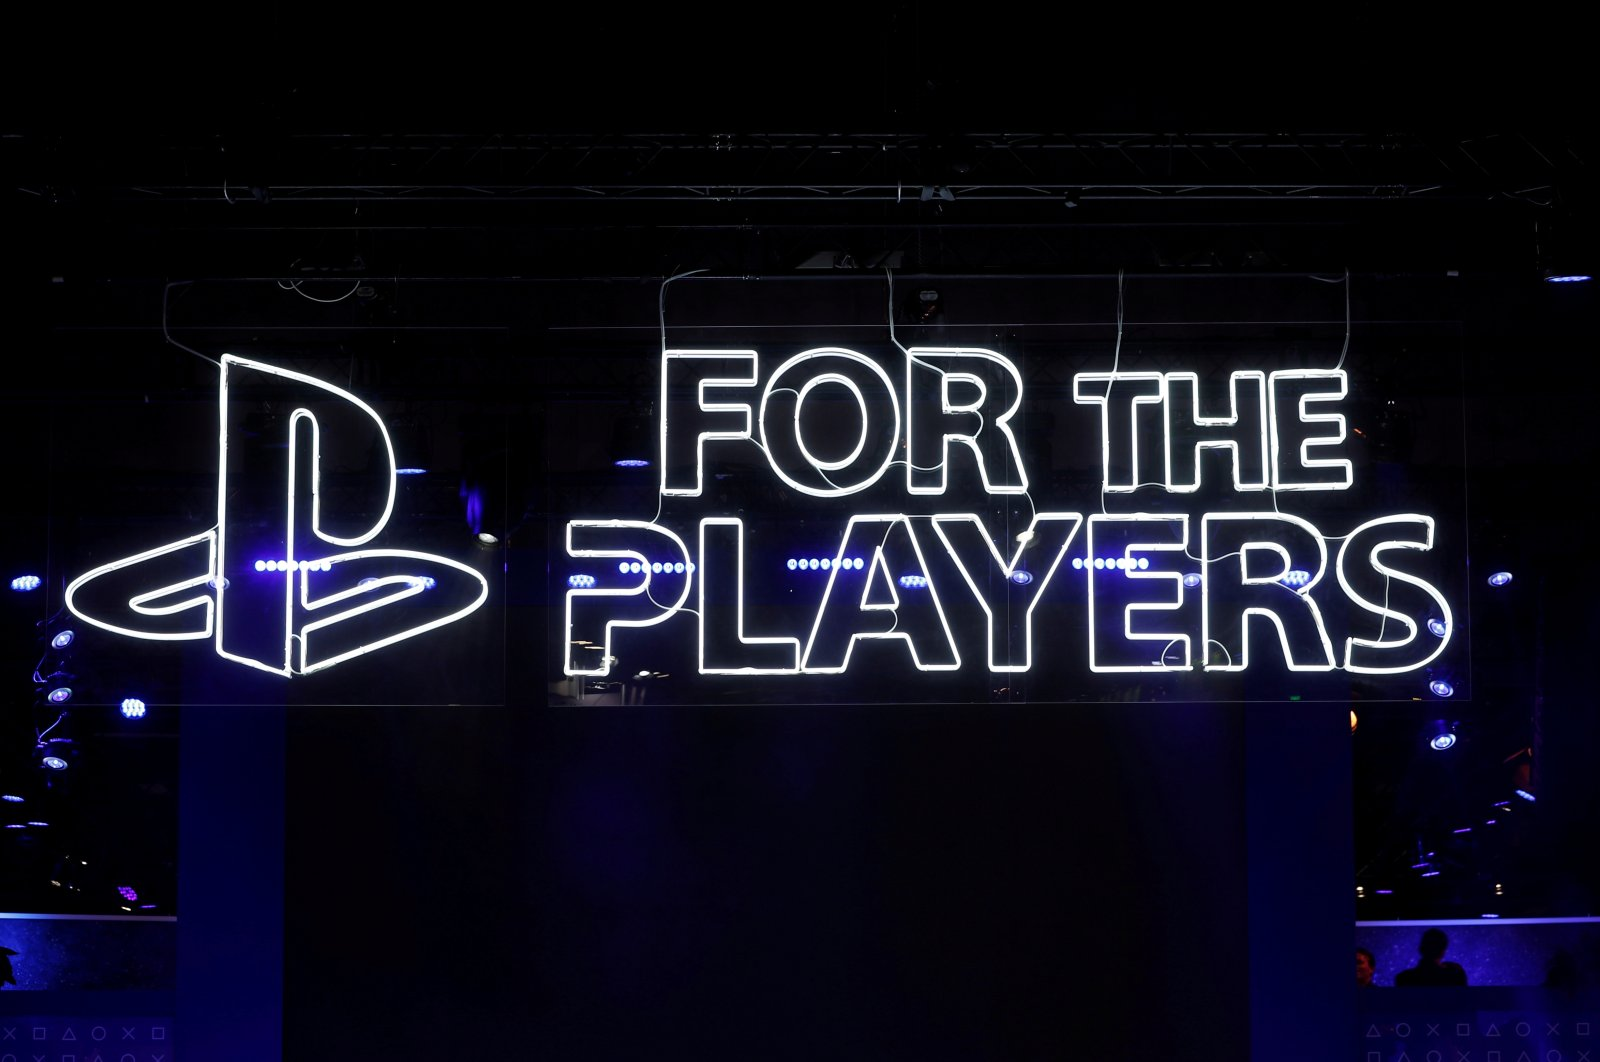 The Sony Playstation logo is seen at the Paris Games Week (PGW), a trade fair for video games in Paris, France, Oct. 25, 2018. (Reuters Photo)